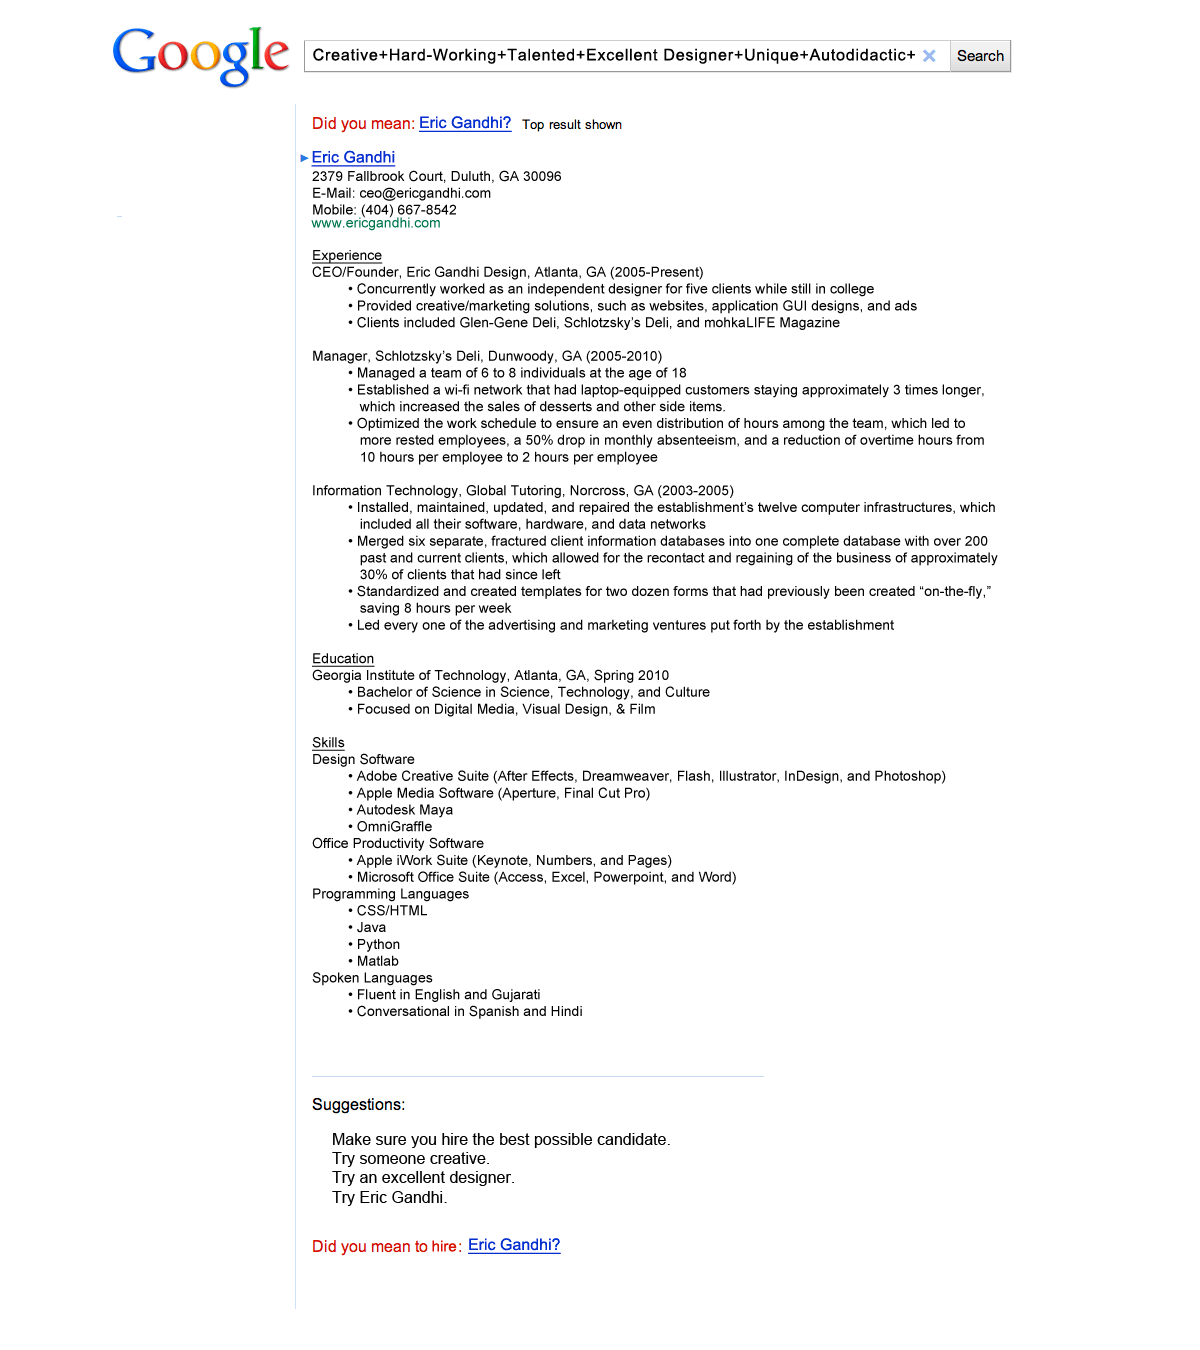 resume search on google